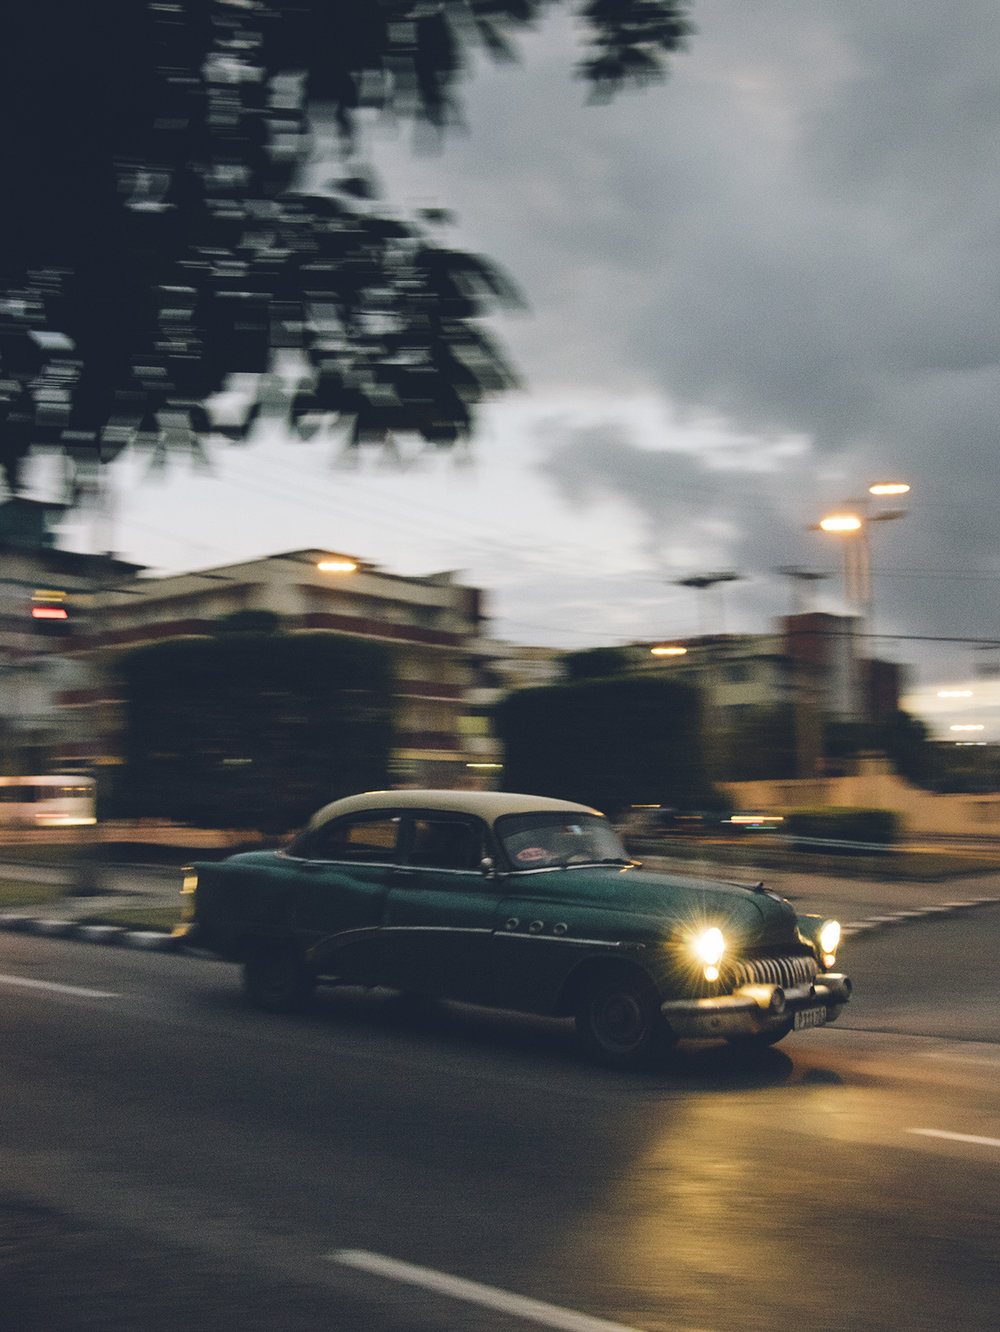 A Buick Roadmaster lumbers through the early evening.